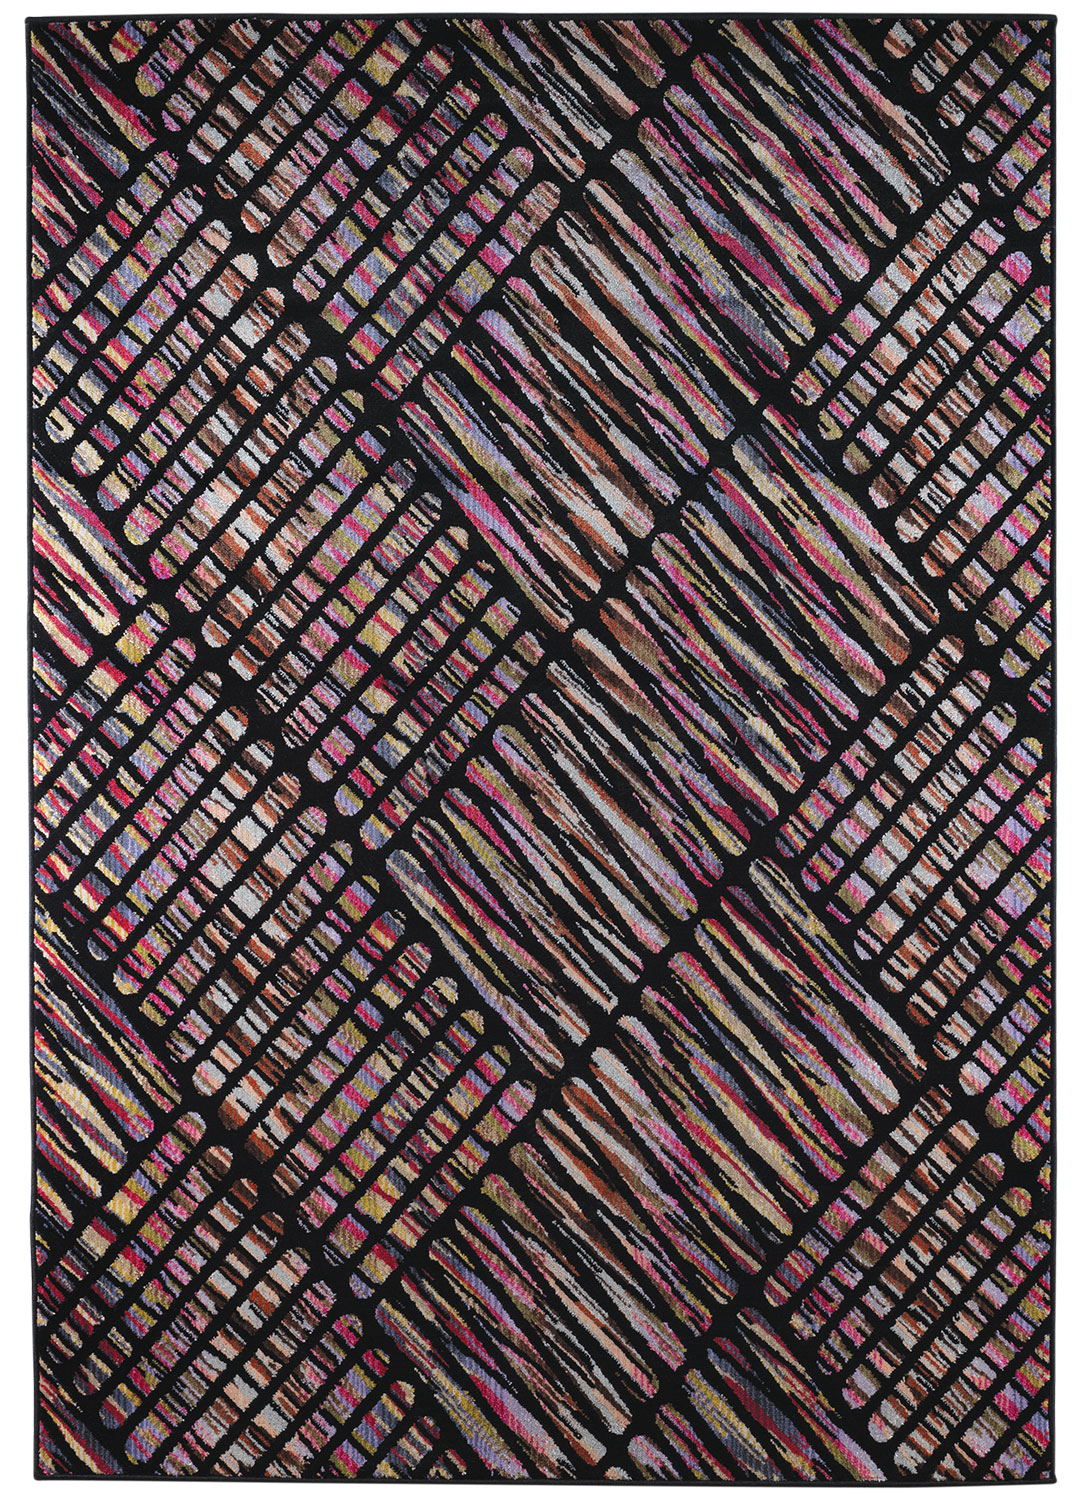 Kiley 5' x 8' Area Rug - Candy Black